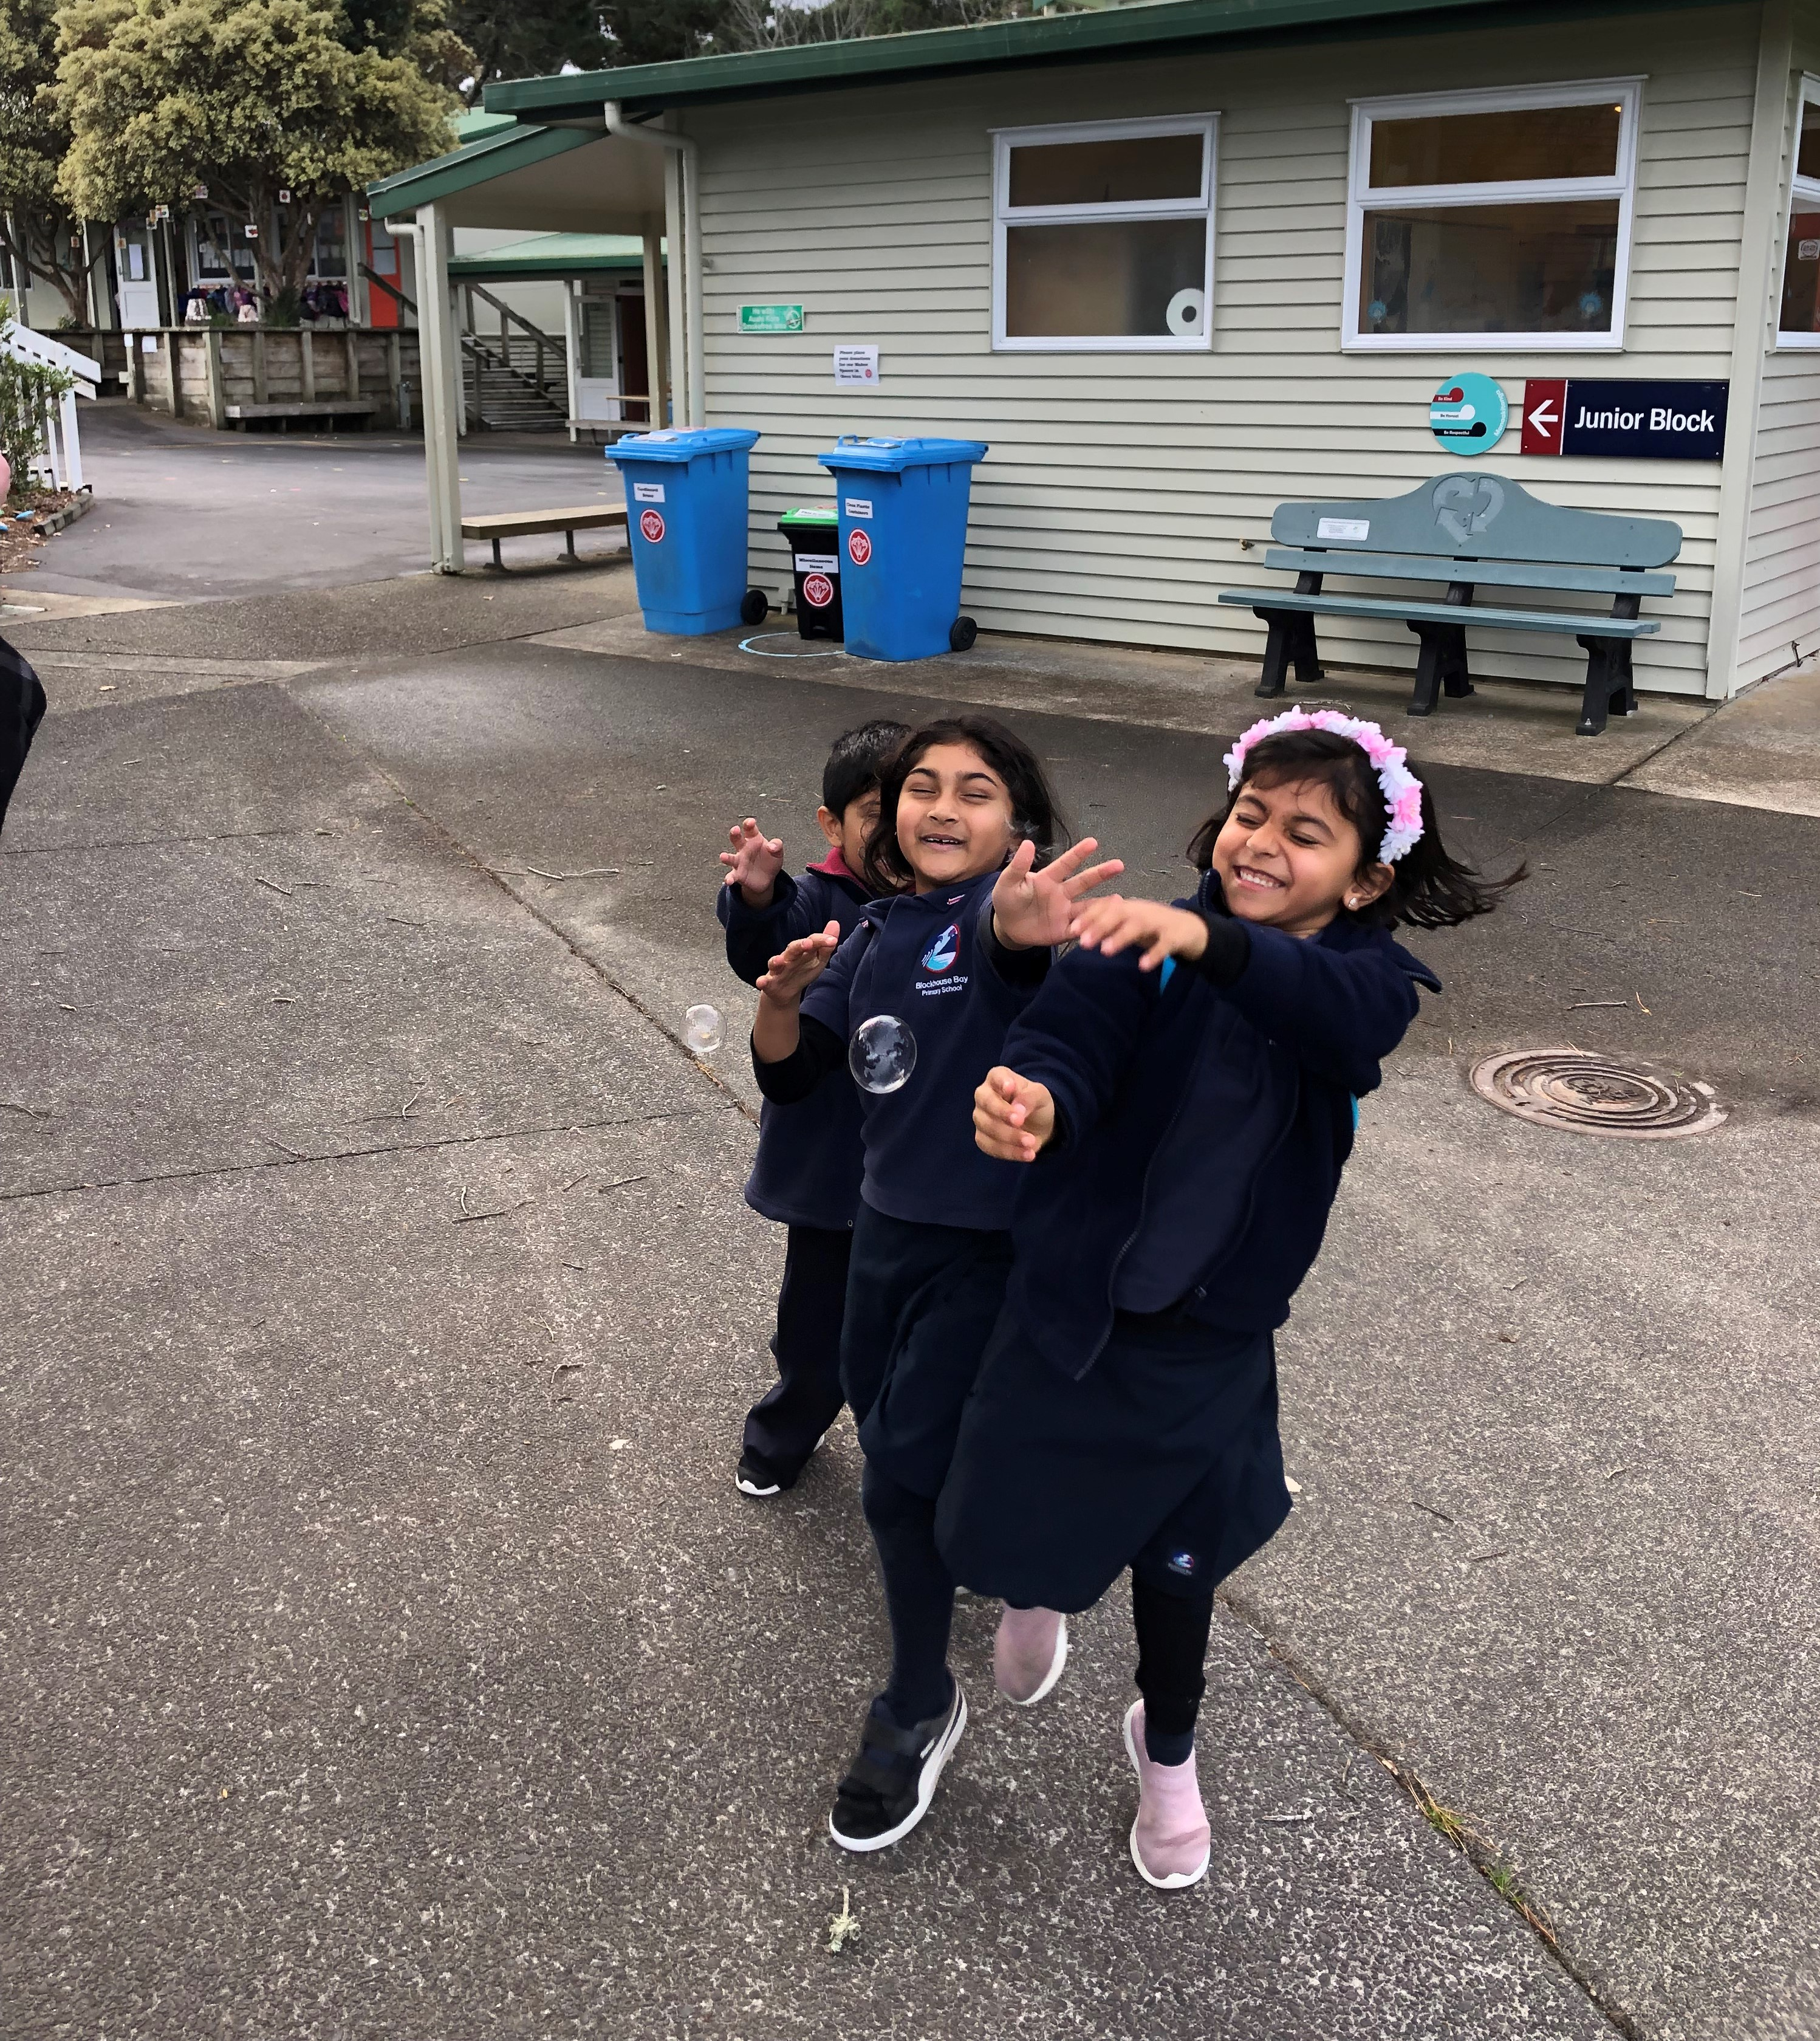 Blockhouse Bay Primary School - Blowing bubbles with Room 18